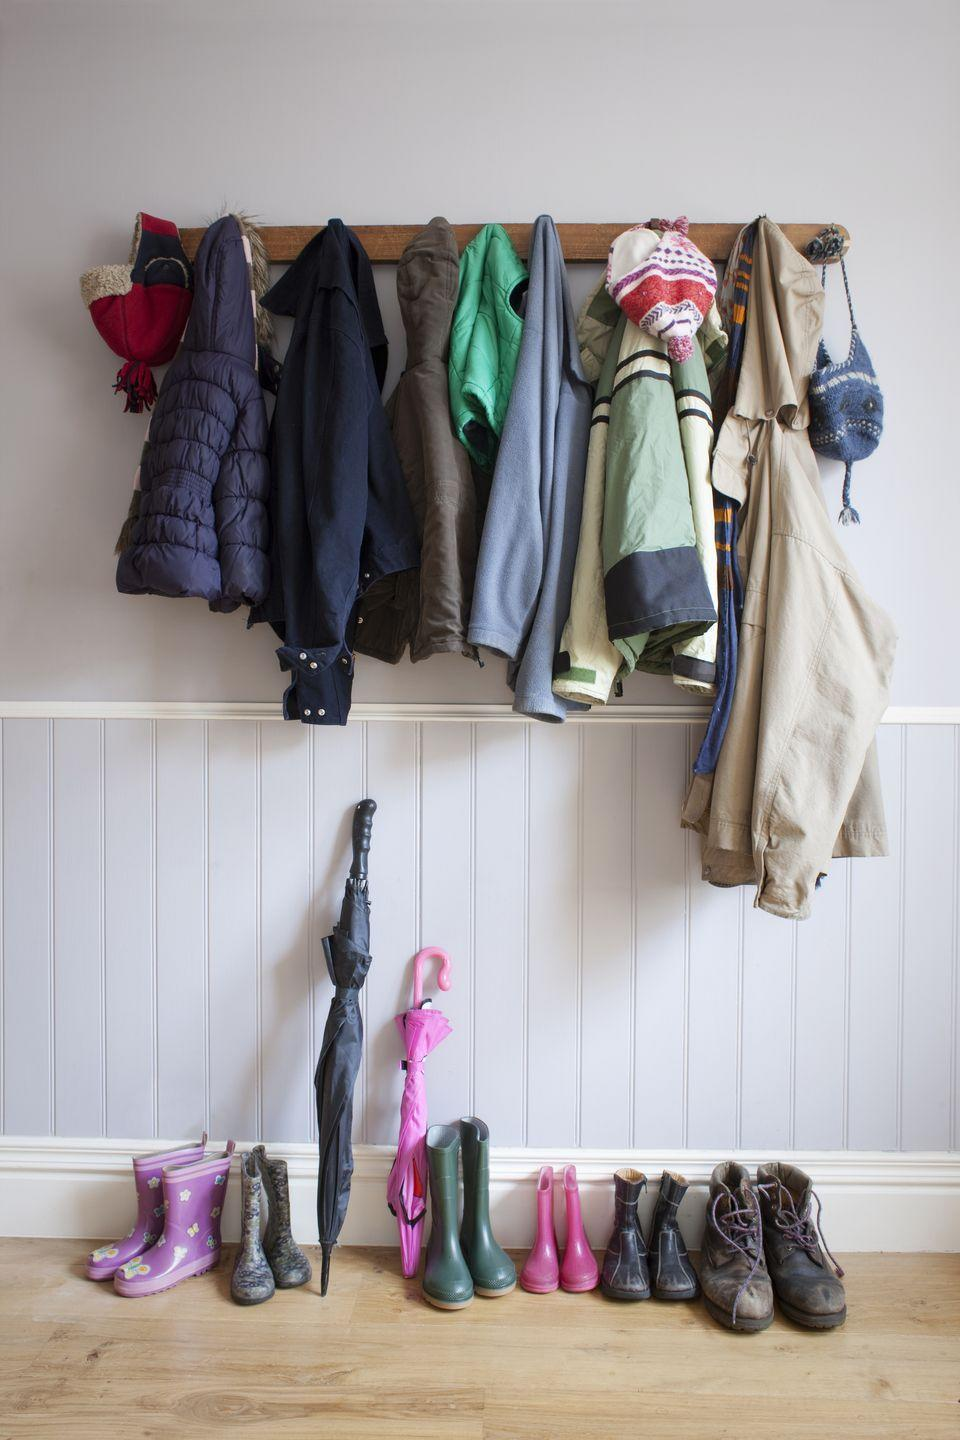 """<p>Keep everything you need to fly out the door <em>by</em> the door, so you can avoid running around the house when it's time to go. Hang coats and backpacks <a href=""""https://www.amazon.com/Rustic-Wall-Mounted-Coat-Shelf/dp/B07GBFRQYY/?tag=syn-yahoo-20&ascsubtag=%5Bartid%7C10055.g.2358%5Bsrc%7Cyahoo-us"""" rel=""""nofollow noopener"""" target=""""_blank"""" data-ylk=""""slk:on hooks"""" class=""""link rapid-noclick-resp"""">on hooks</a> and keep shoes (and clean socks!) below.</p>"""